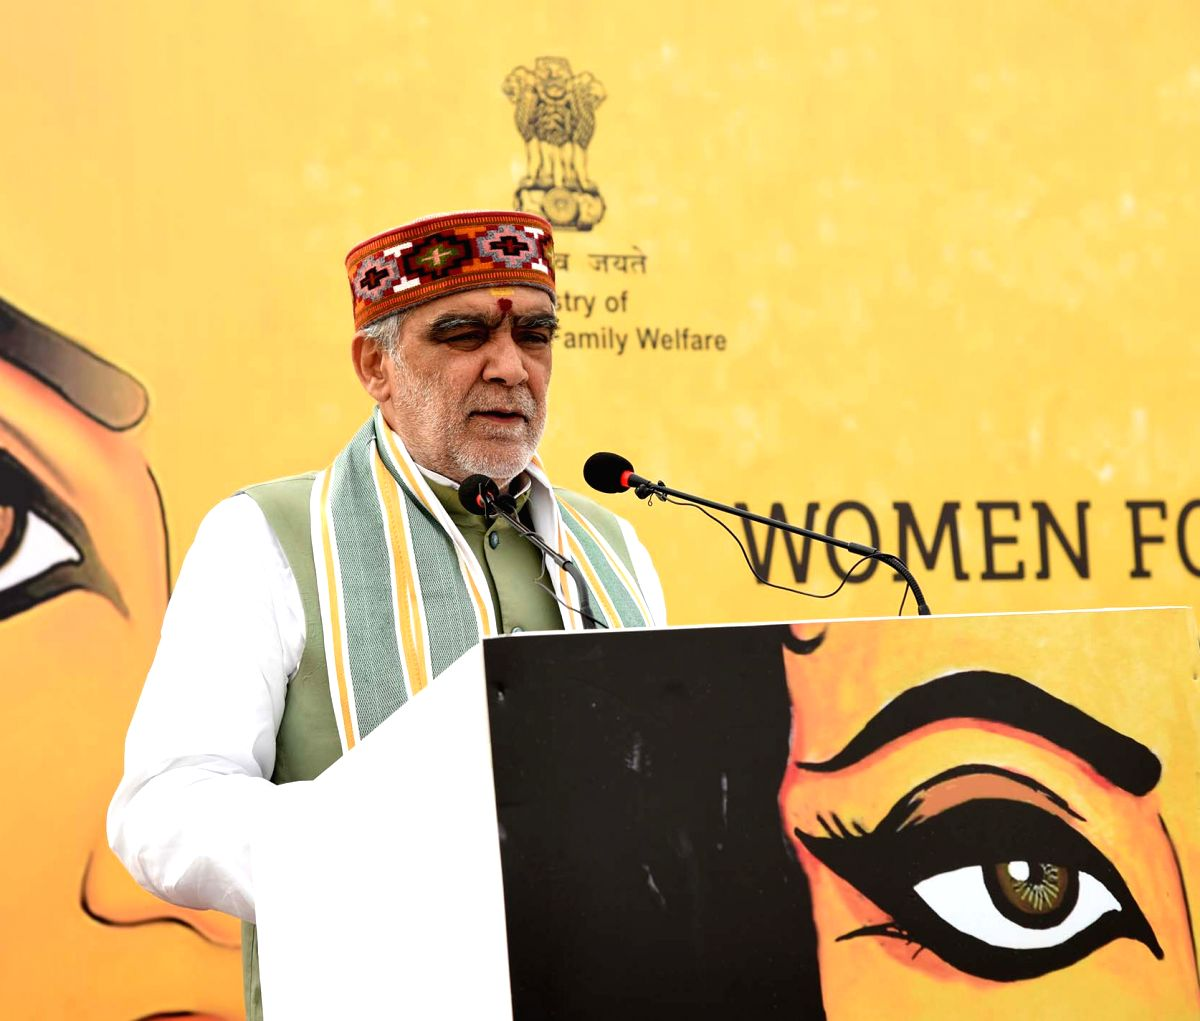 New Delhi: Union MoS Health and Family Welfare Ashwini Kumar Choubey addresses at the inauguration of a camp for screening of Anaemia, Hypertension, Diabetes, Oral cancer, BMI and counselling on nutrition for women, at Nirman Bhawan, in New Delhi on